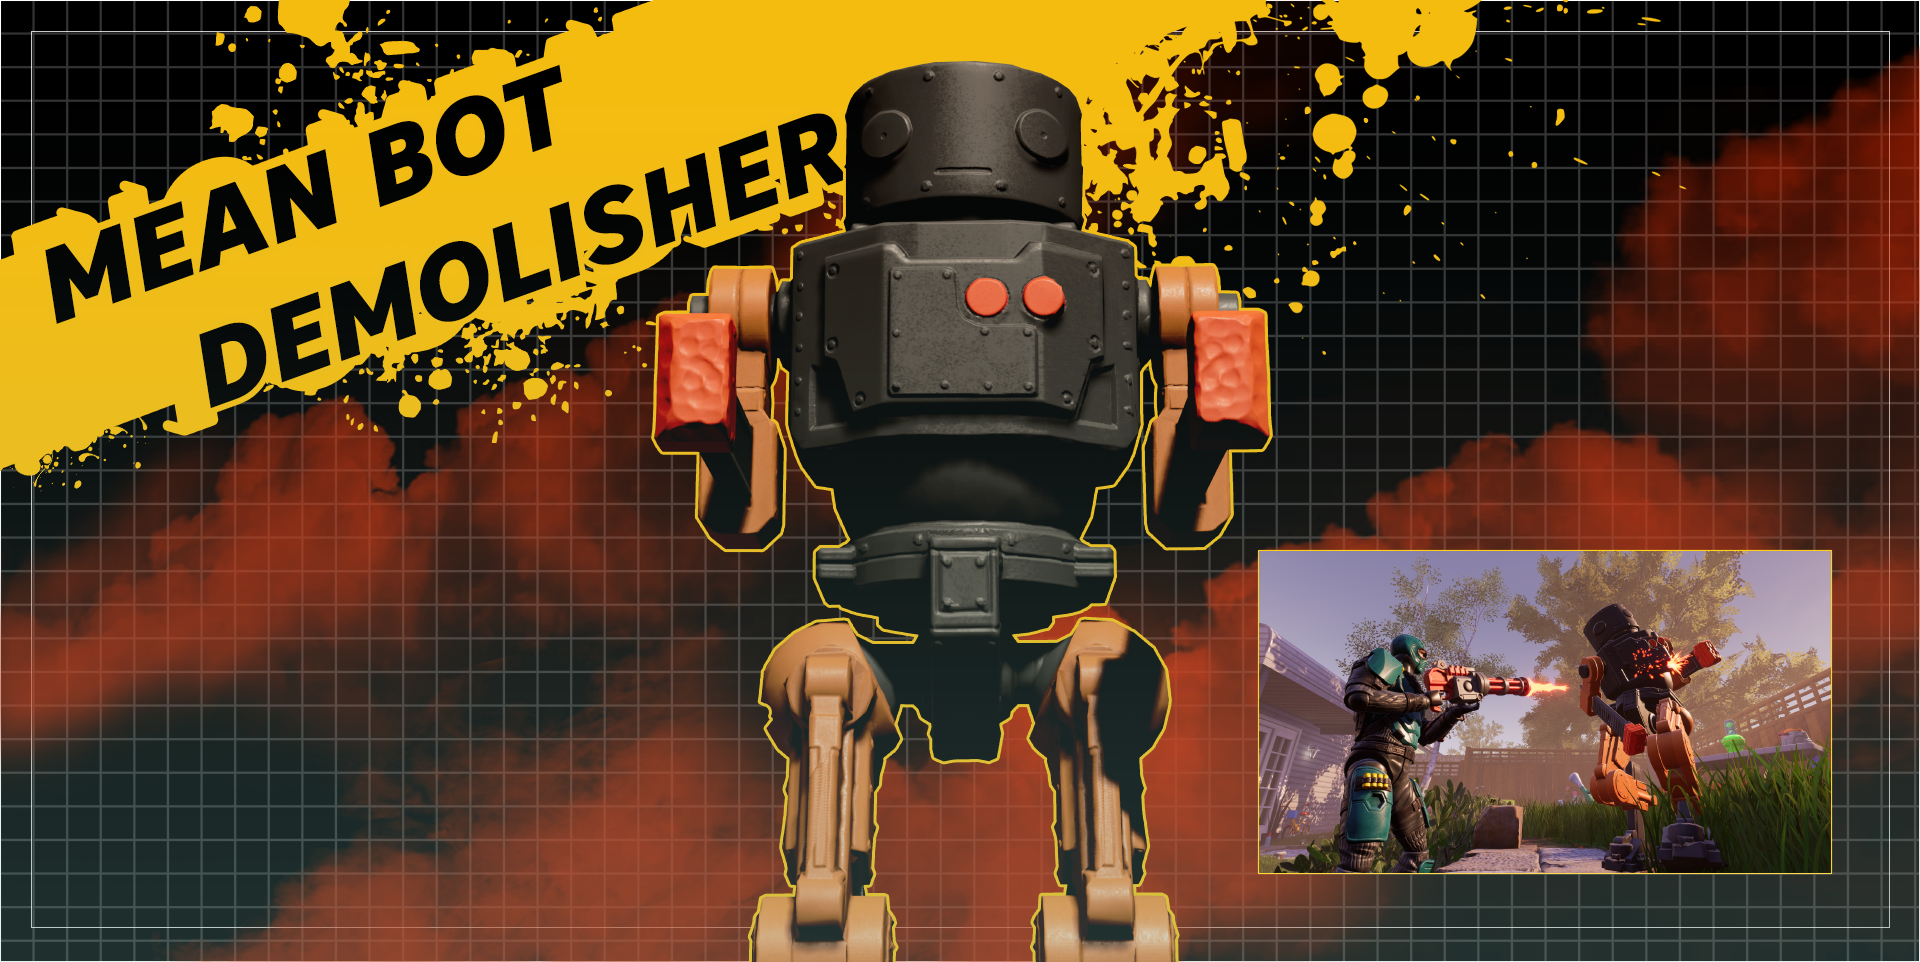 meanbot demolisher 2